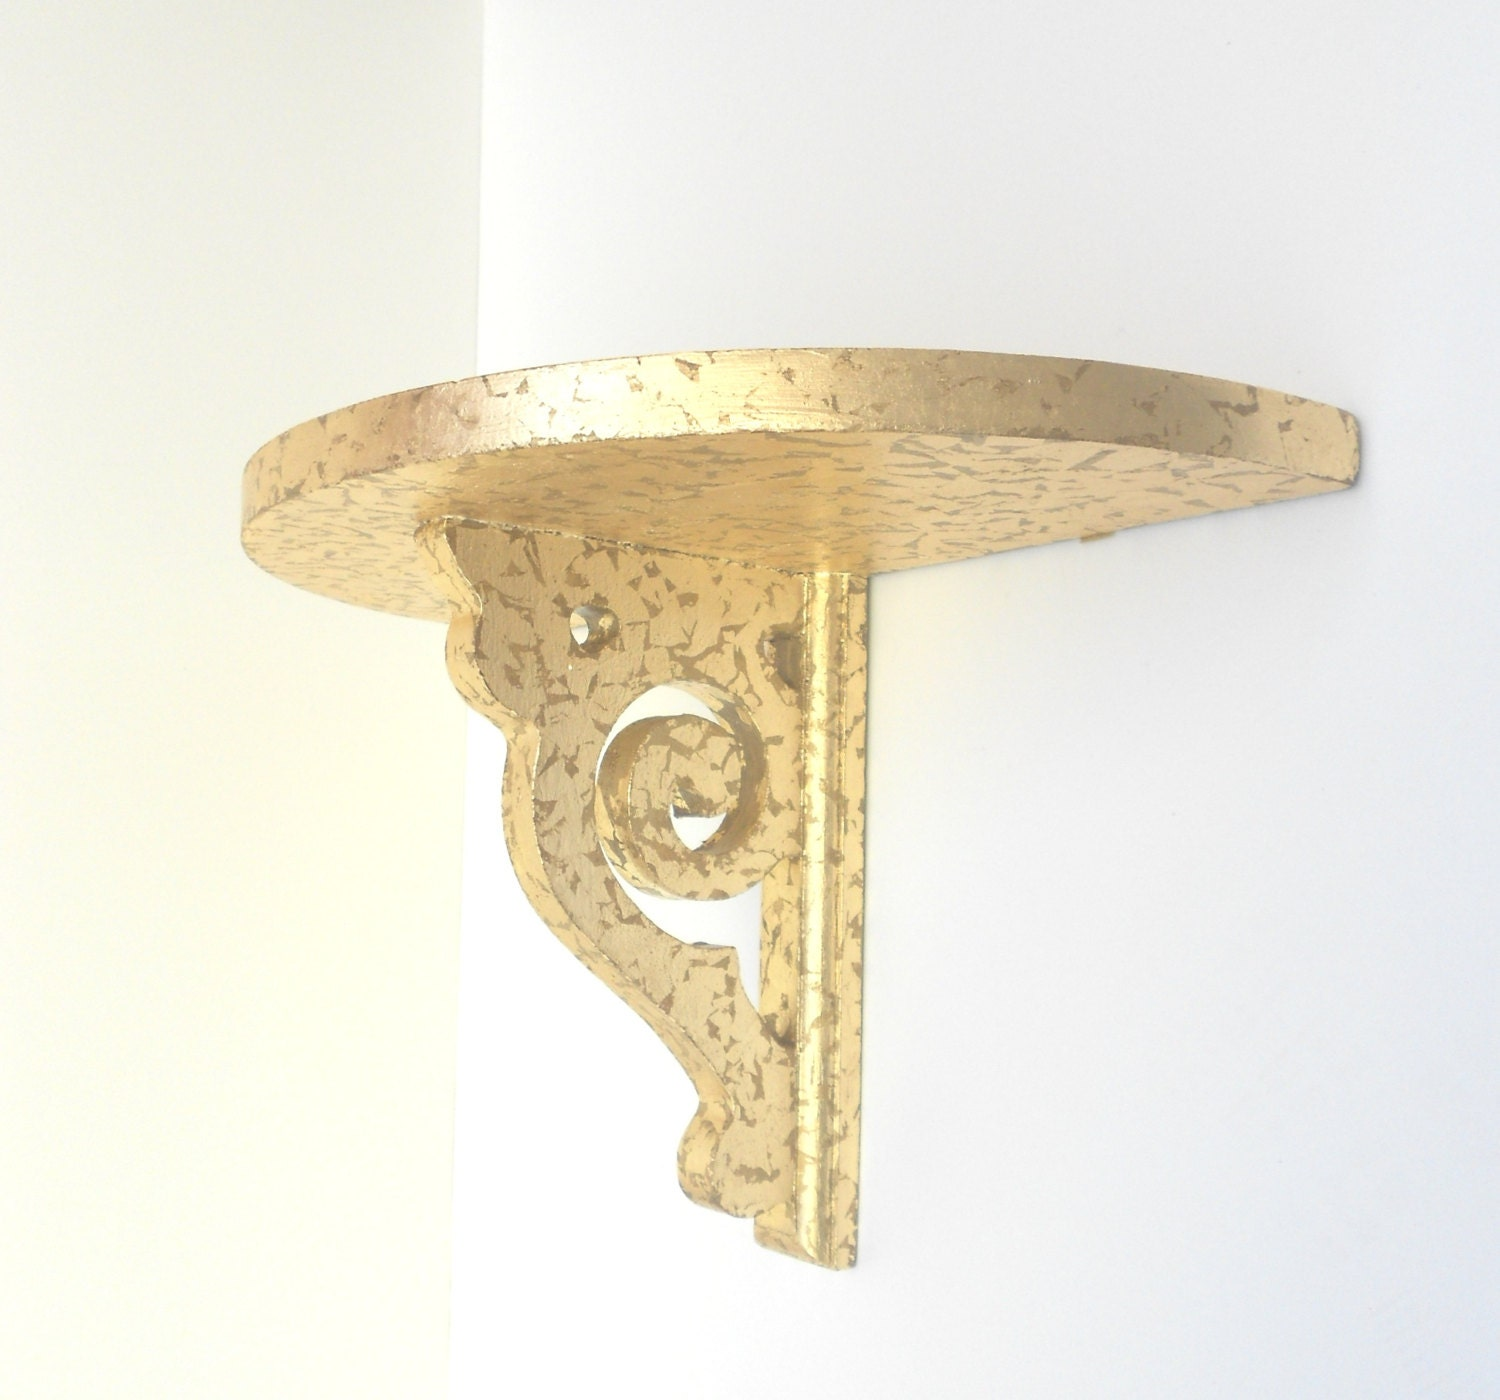 Wall Sconces Shelf : Shelf SconceGold Leaf Decorative Wall Sconce by GoldLeafGirl